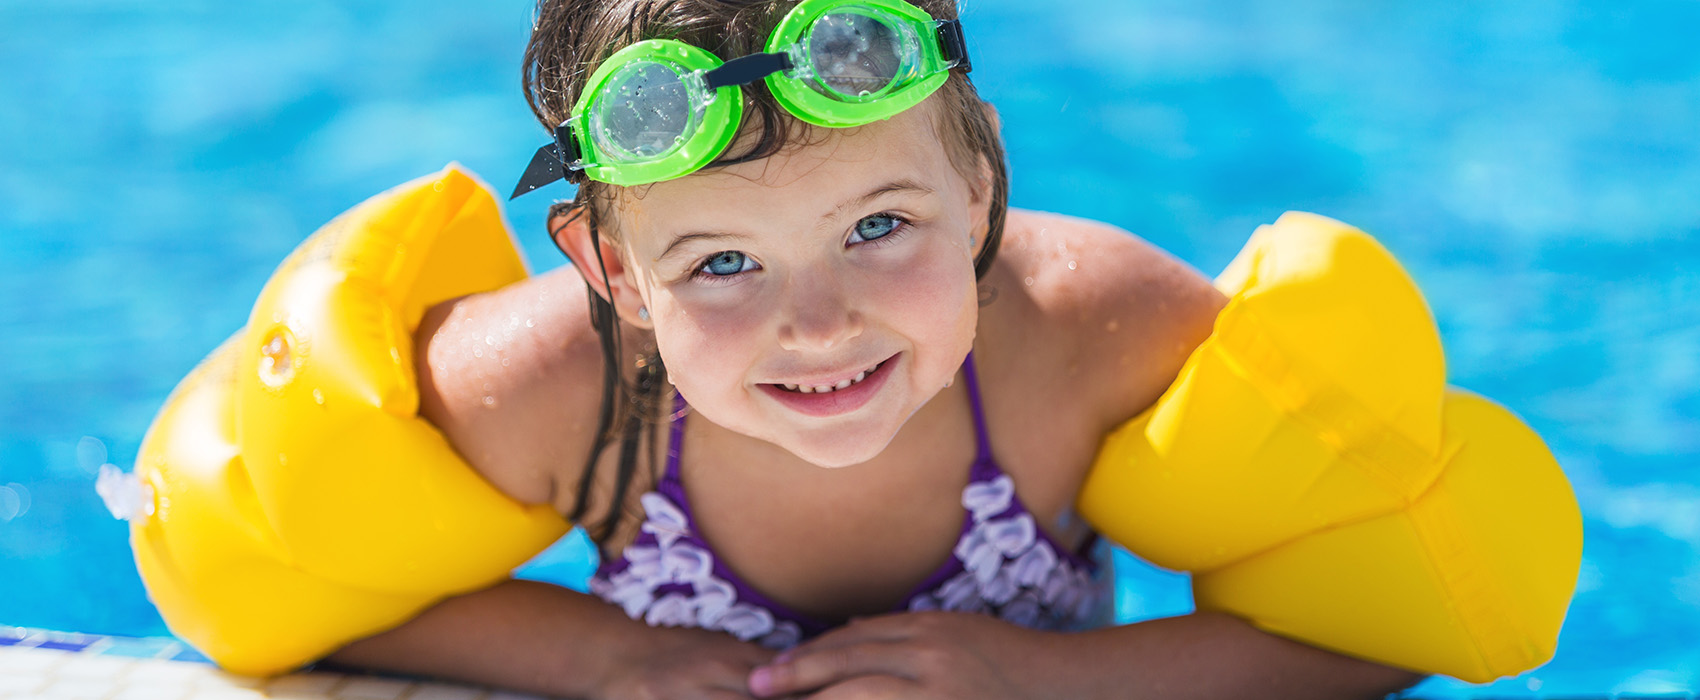 NC Spas, hot tubs outdoor, charlotte NC spas, portable spas hot tubs, charlotte spas, outdoor hot tub, outdoor hot tubs, NC Hot Tubs, Matthews NC hot tubs, Matthews NC spas, Charlotte NC Hot tubs, hot tubs and spas, portable hot tubs and spas, outdoor spas and hot tubs,